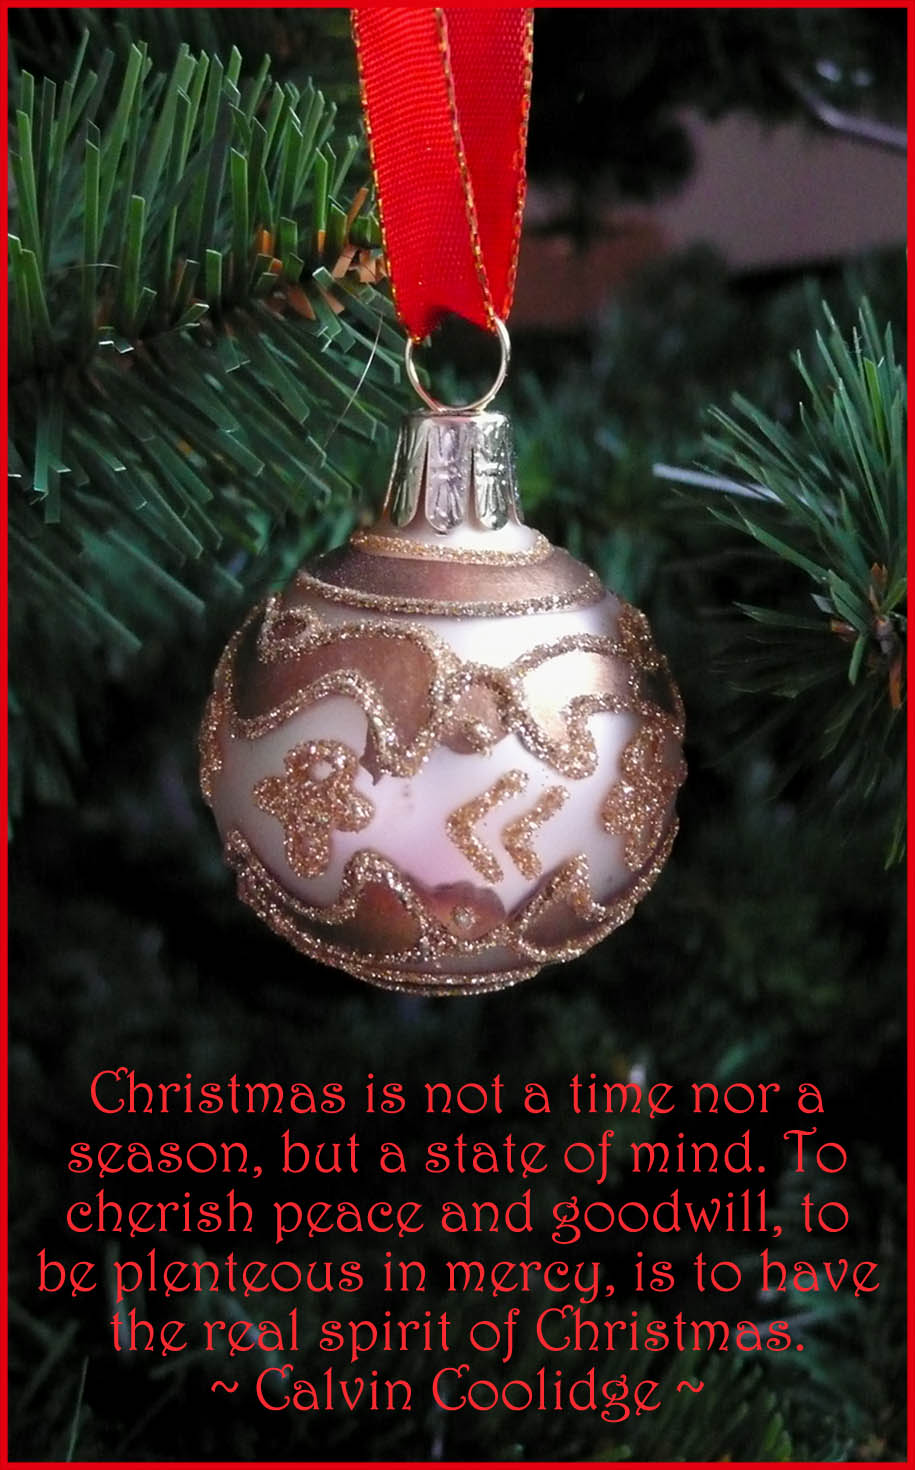 Merry Christmas quote on greeting card. Picture of gold christmas ball on tree.